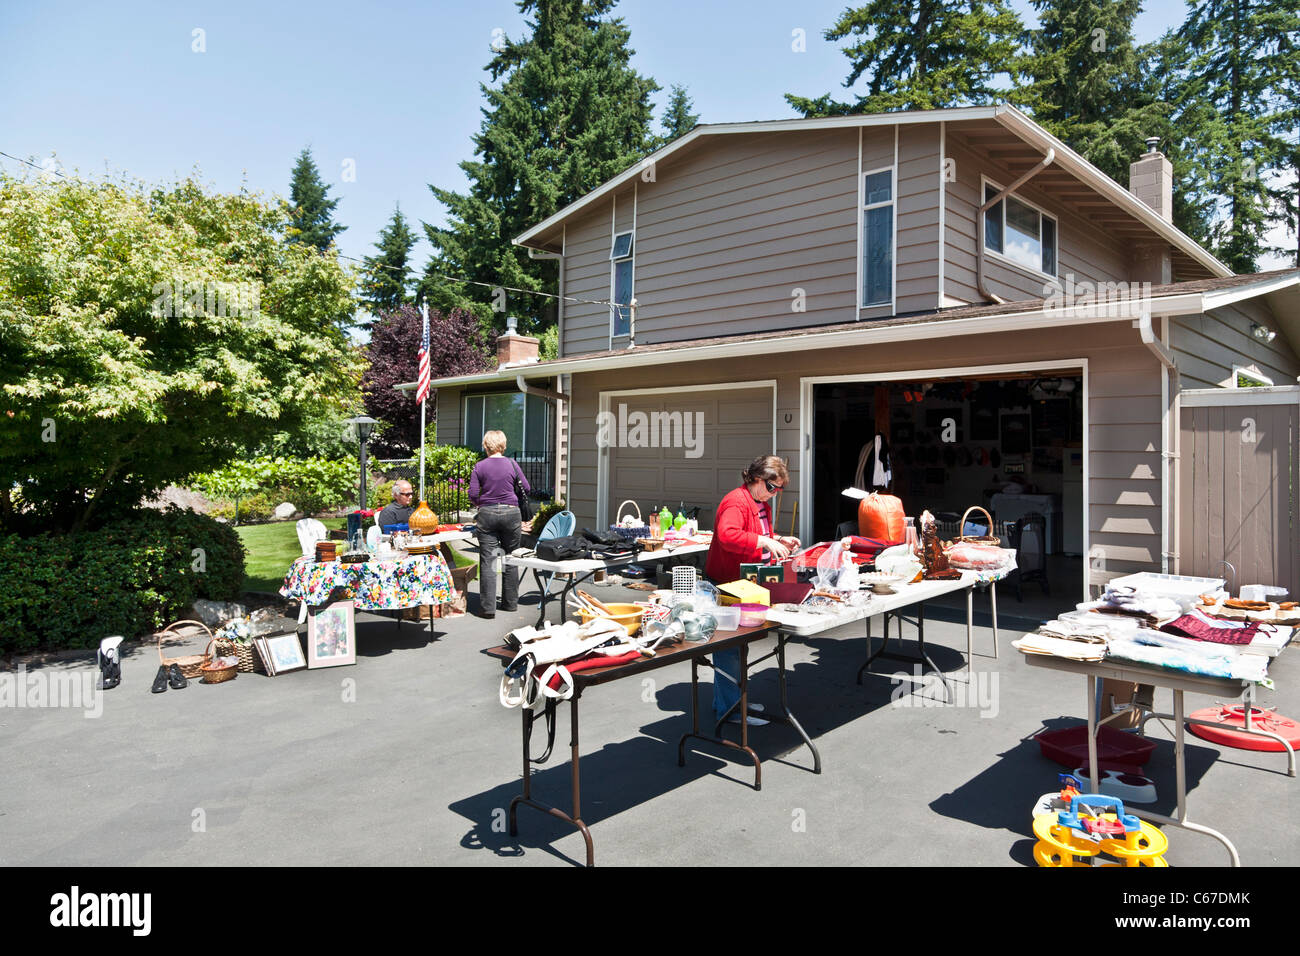 garage yard sale used clothes artwork dishes bric a brac kitsch in driveway outside suburban house Edmonds Washington - Stock Image